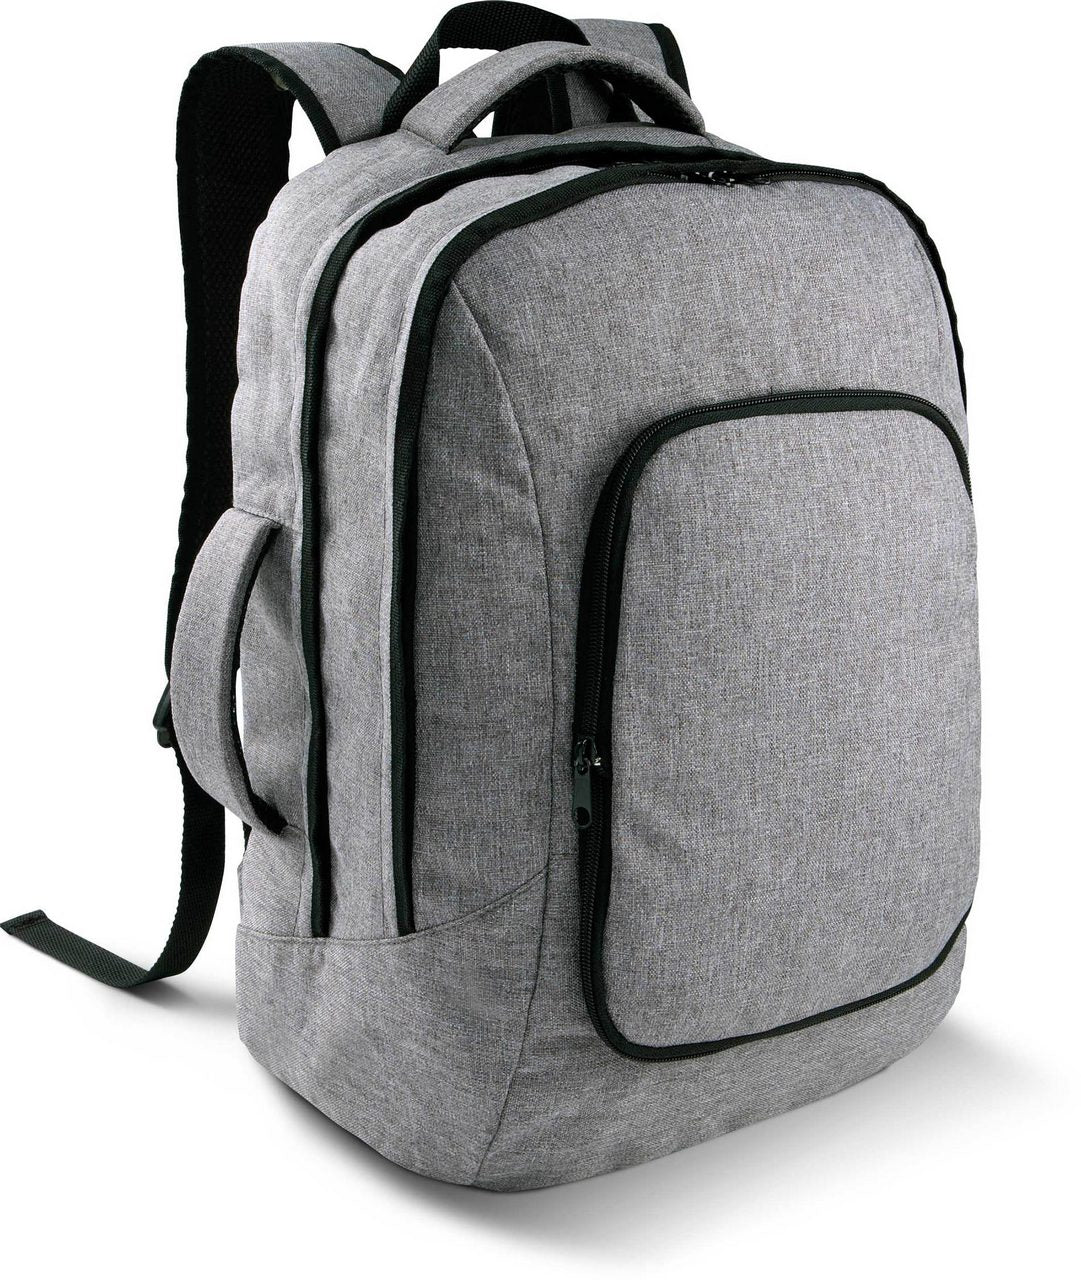 KIMOOD JAP BACKPACK